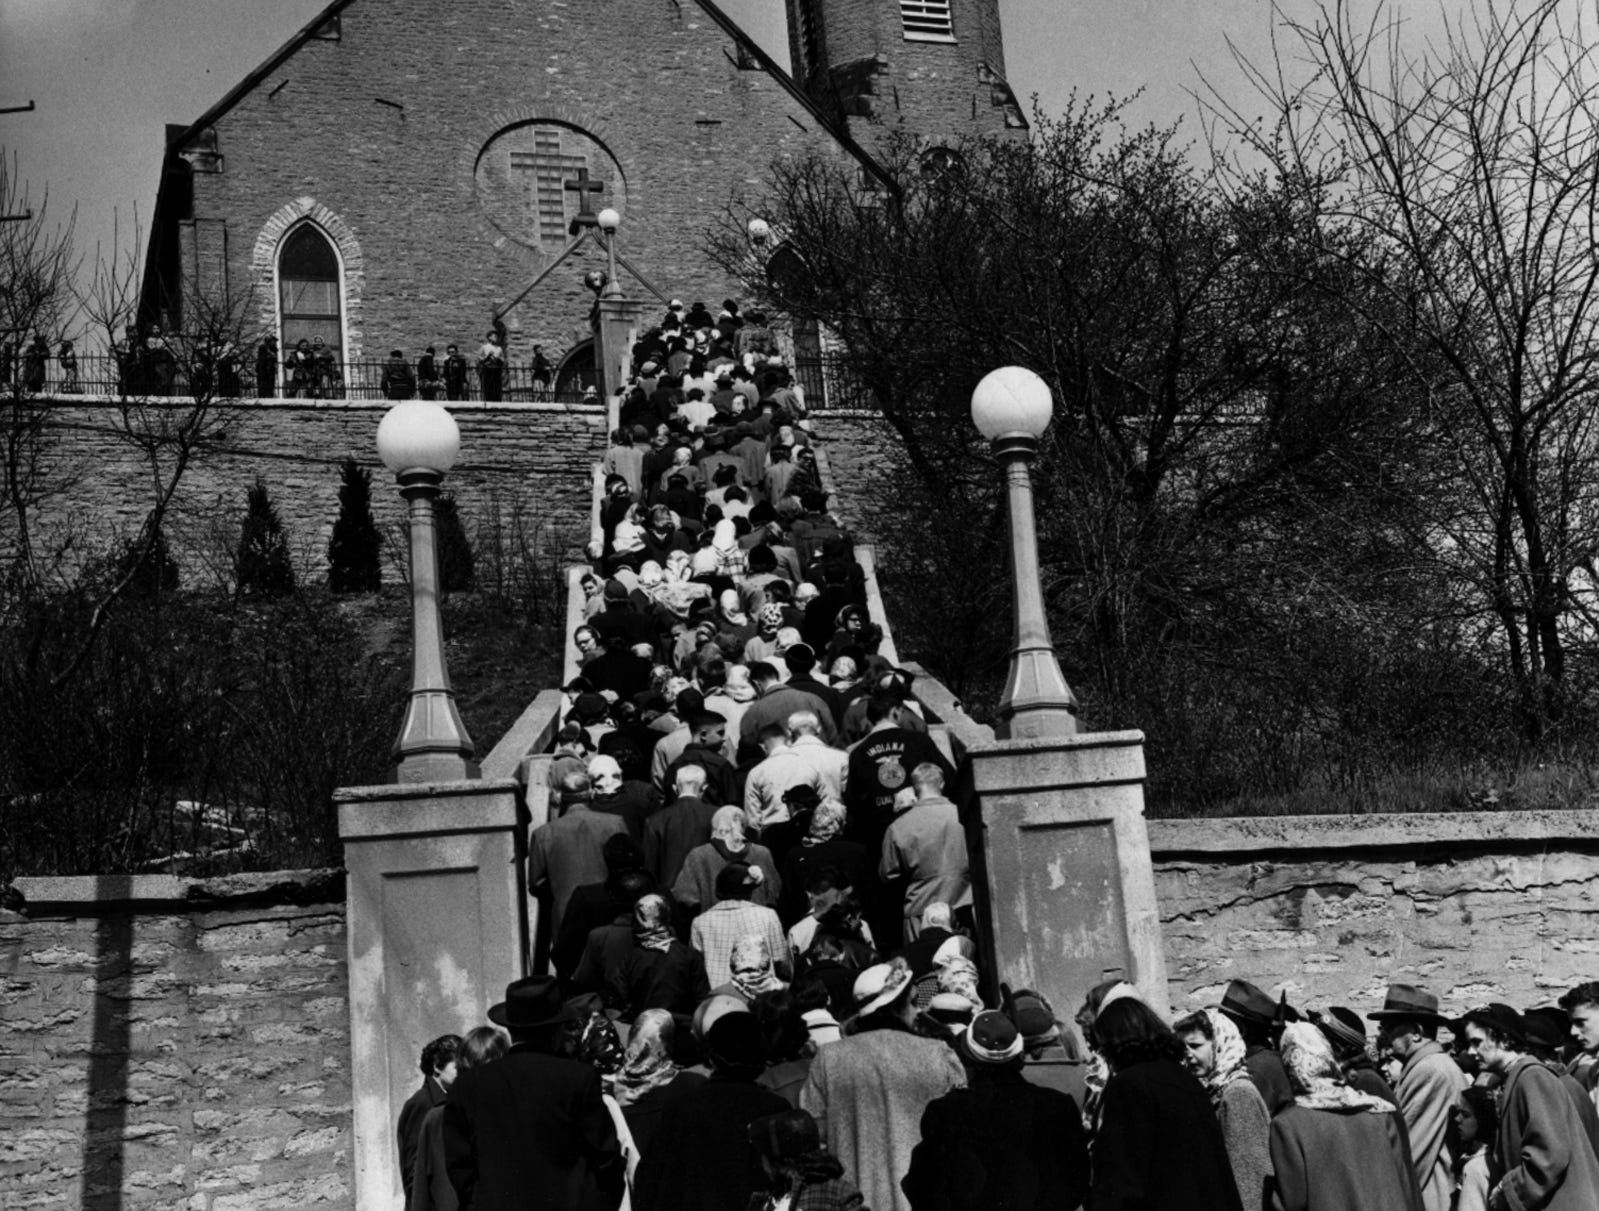 APRIL 4, 1953: People pray the steps on Good Friday at the Immaculate Conception Church in Mount Adams.